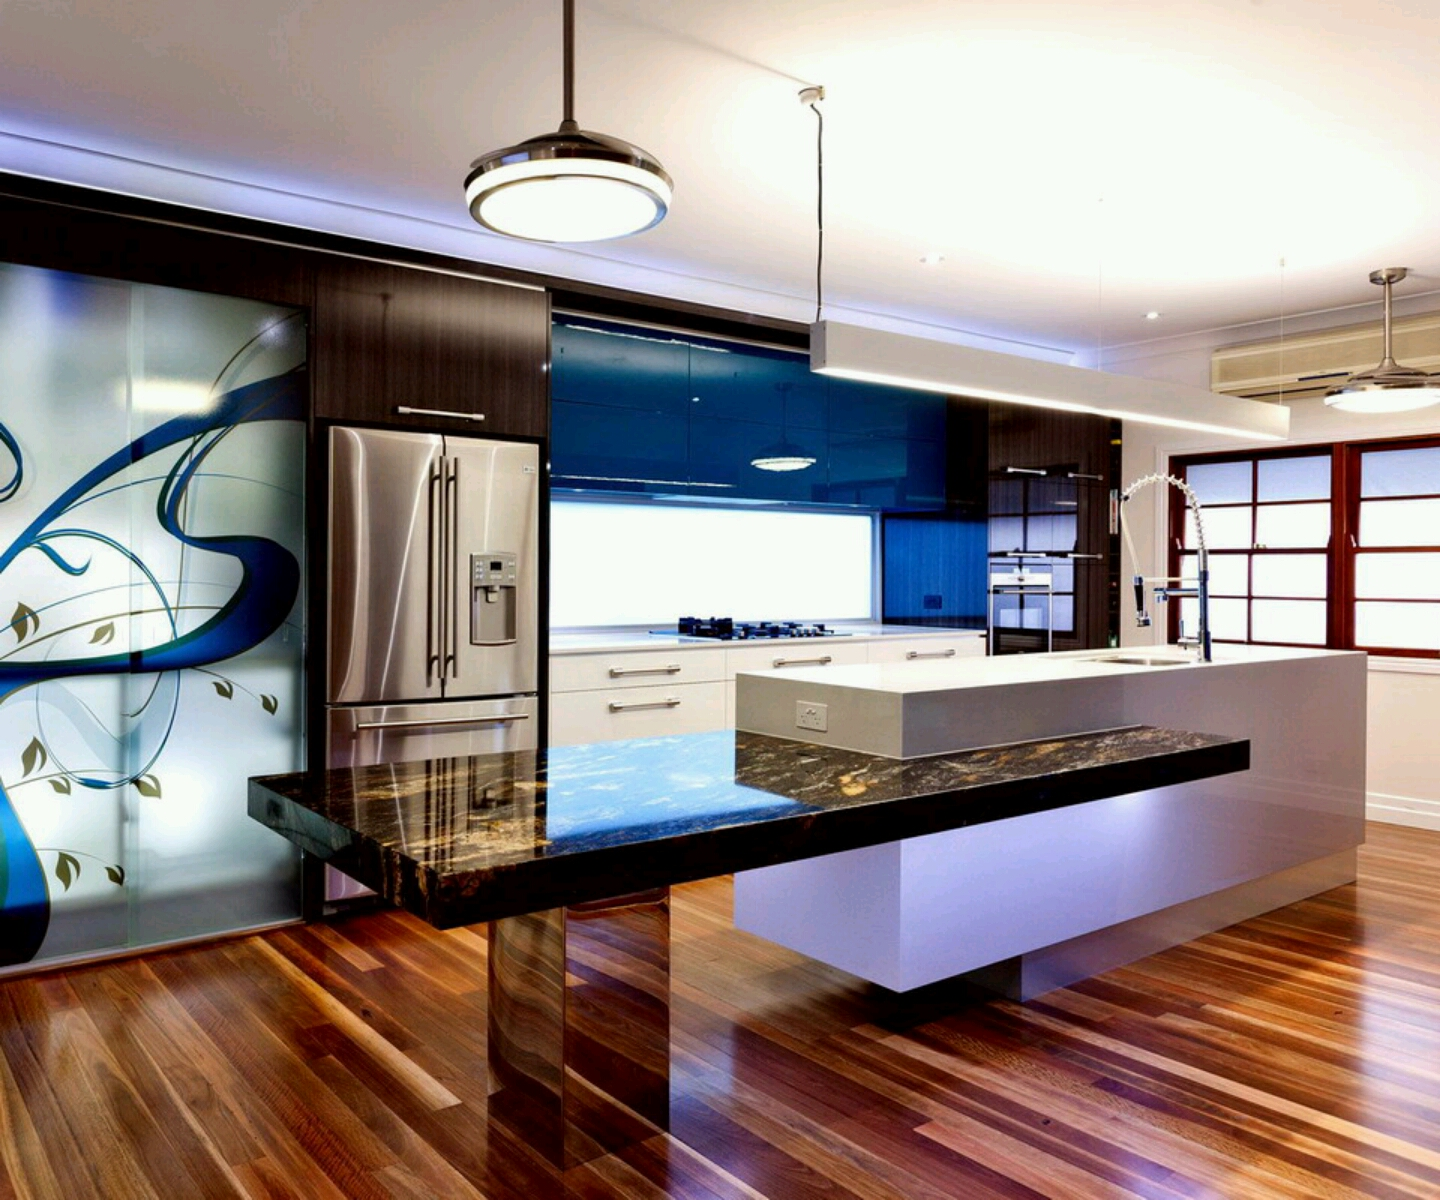 Ultra modern kitchen designs ideas for Pics of modern kitchen designs